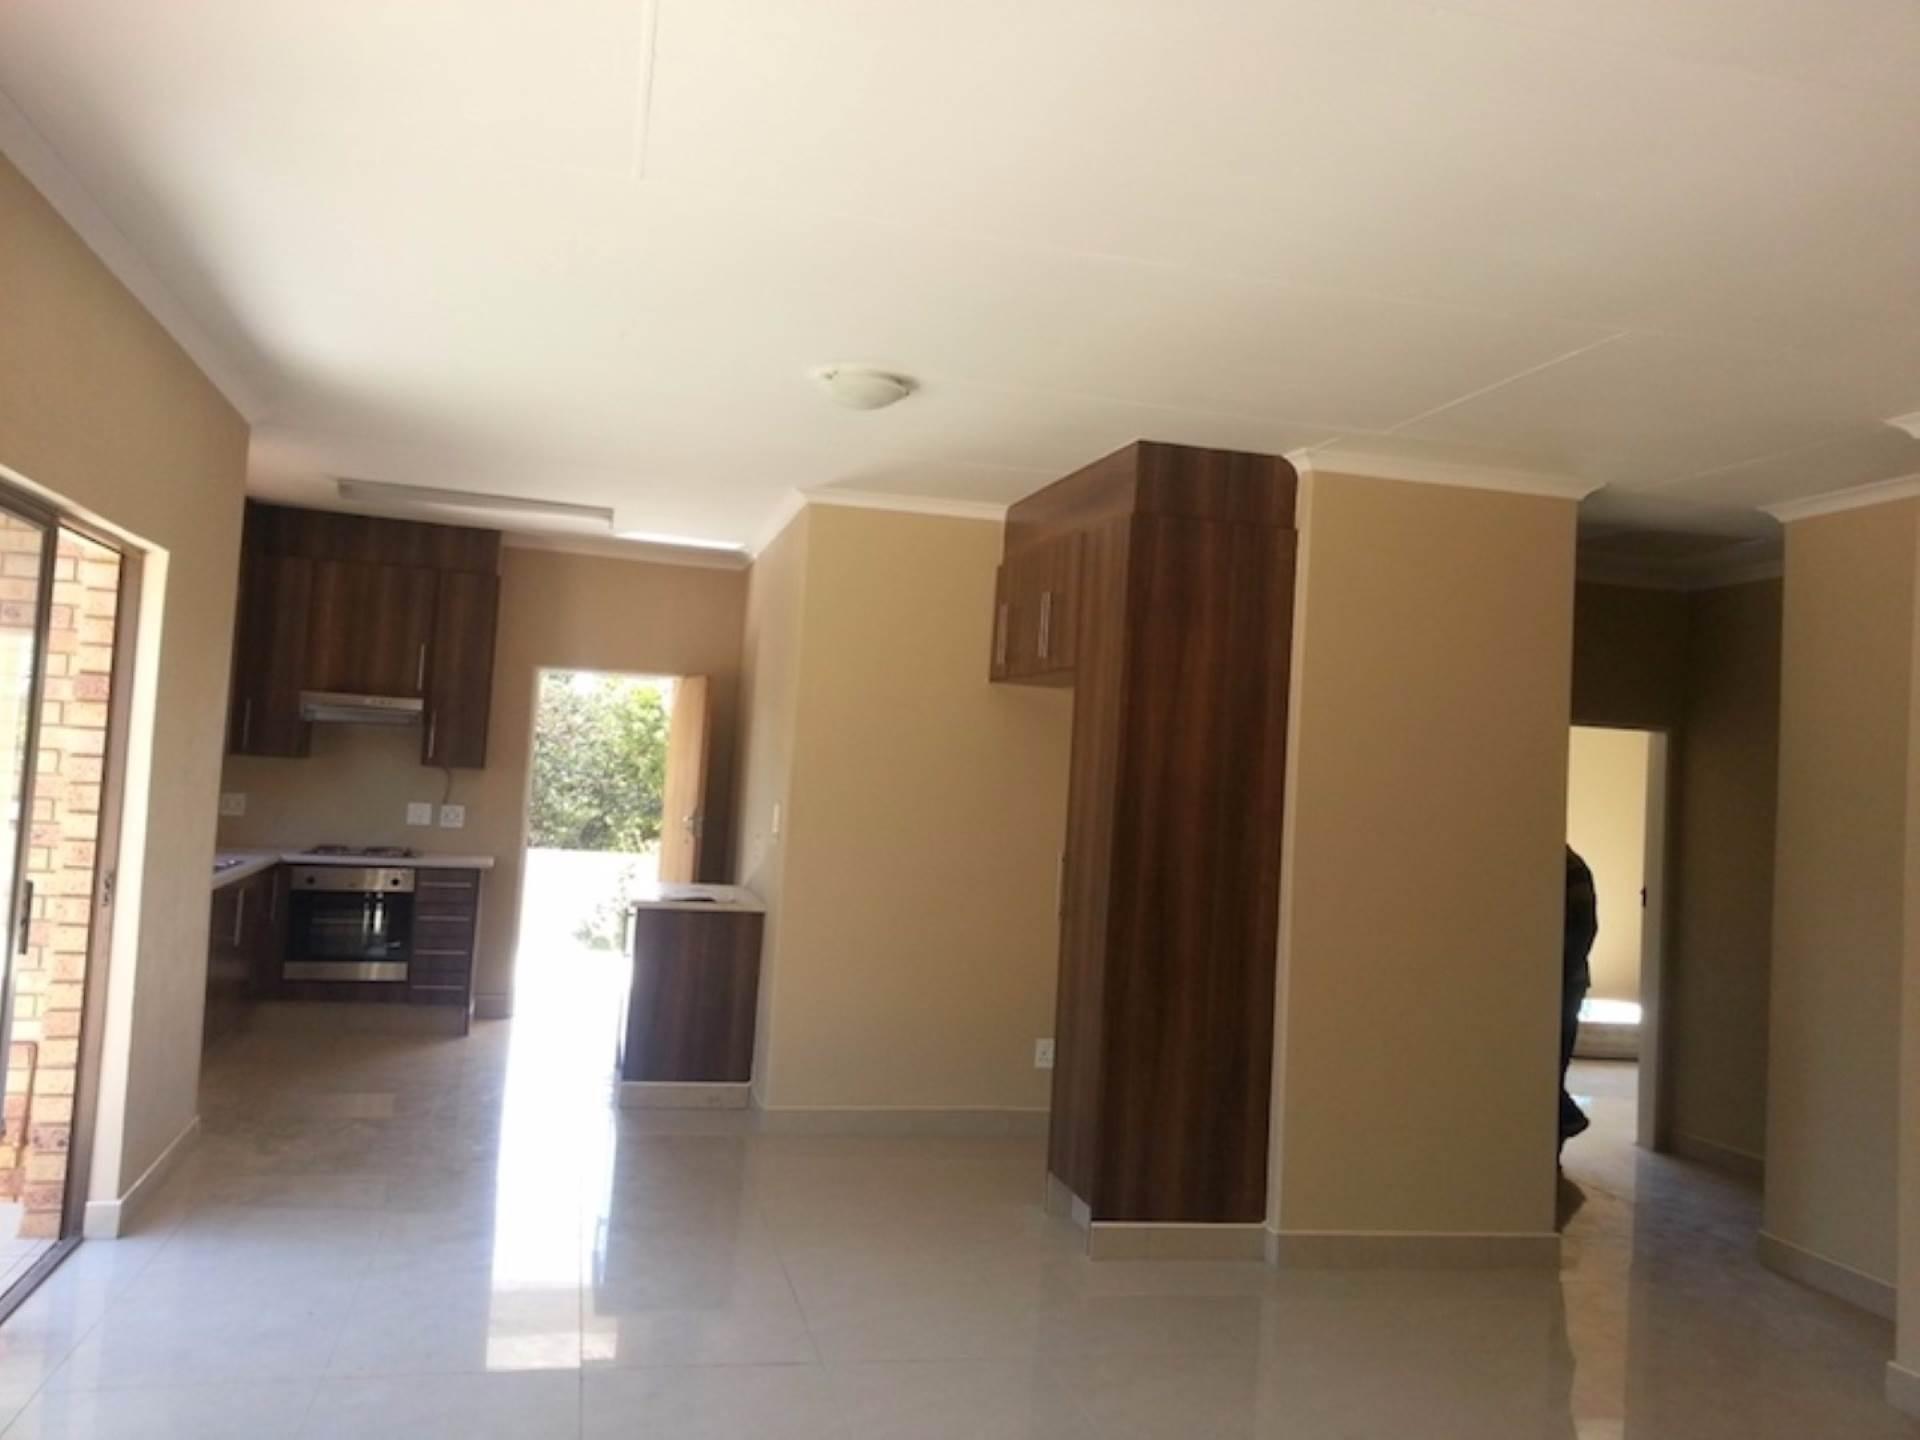 3 BedroomHouse To Rent In Hurlyvale